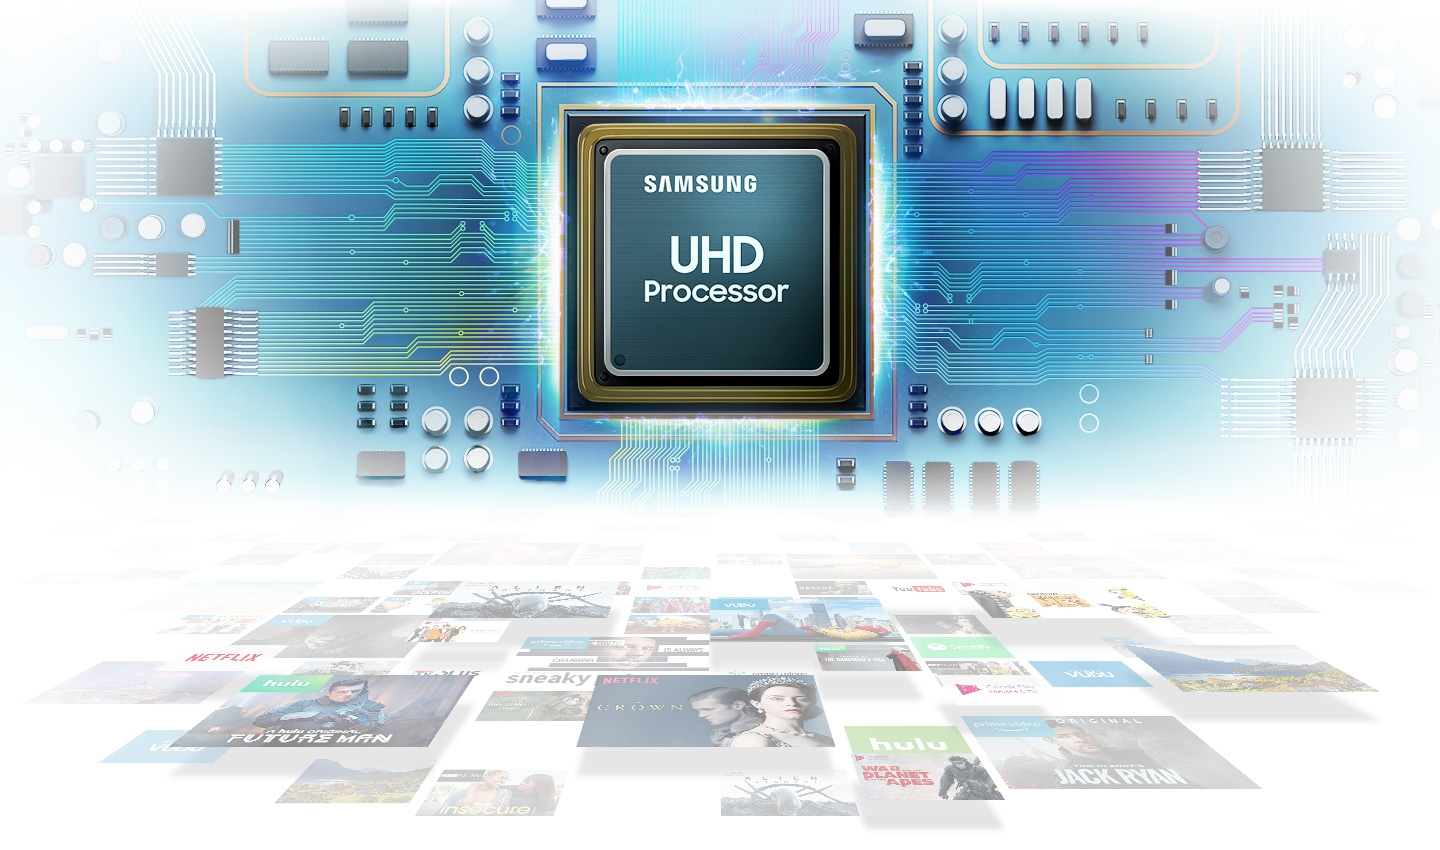 Телевизор SAMSUNG UE43RU7472 (2019г) 4K UHD 3840 x 2160, SMART TV, PQI (Picture Quality Index) 2000, HDR 10+, DVB-T2CS2 - фото UHD Processor,powerful picture quality